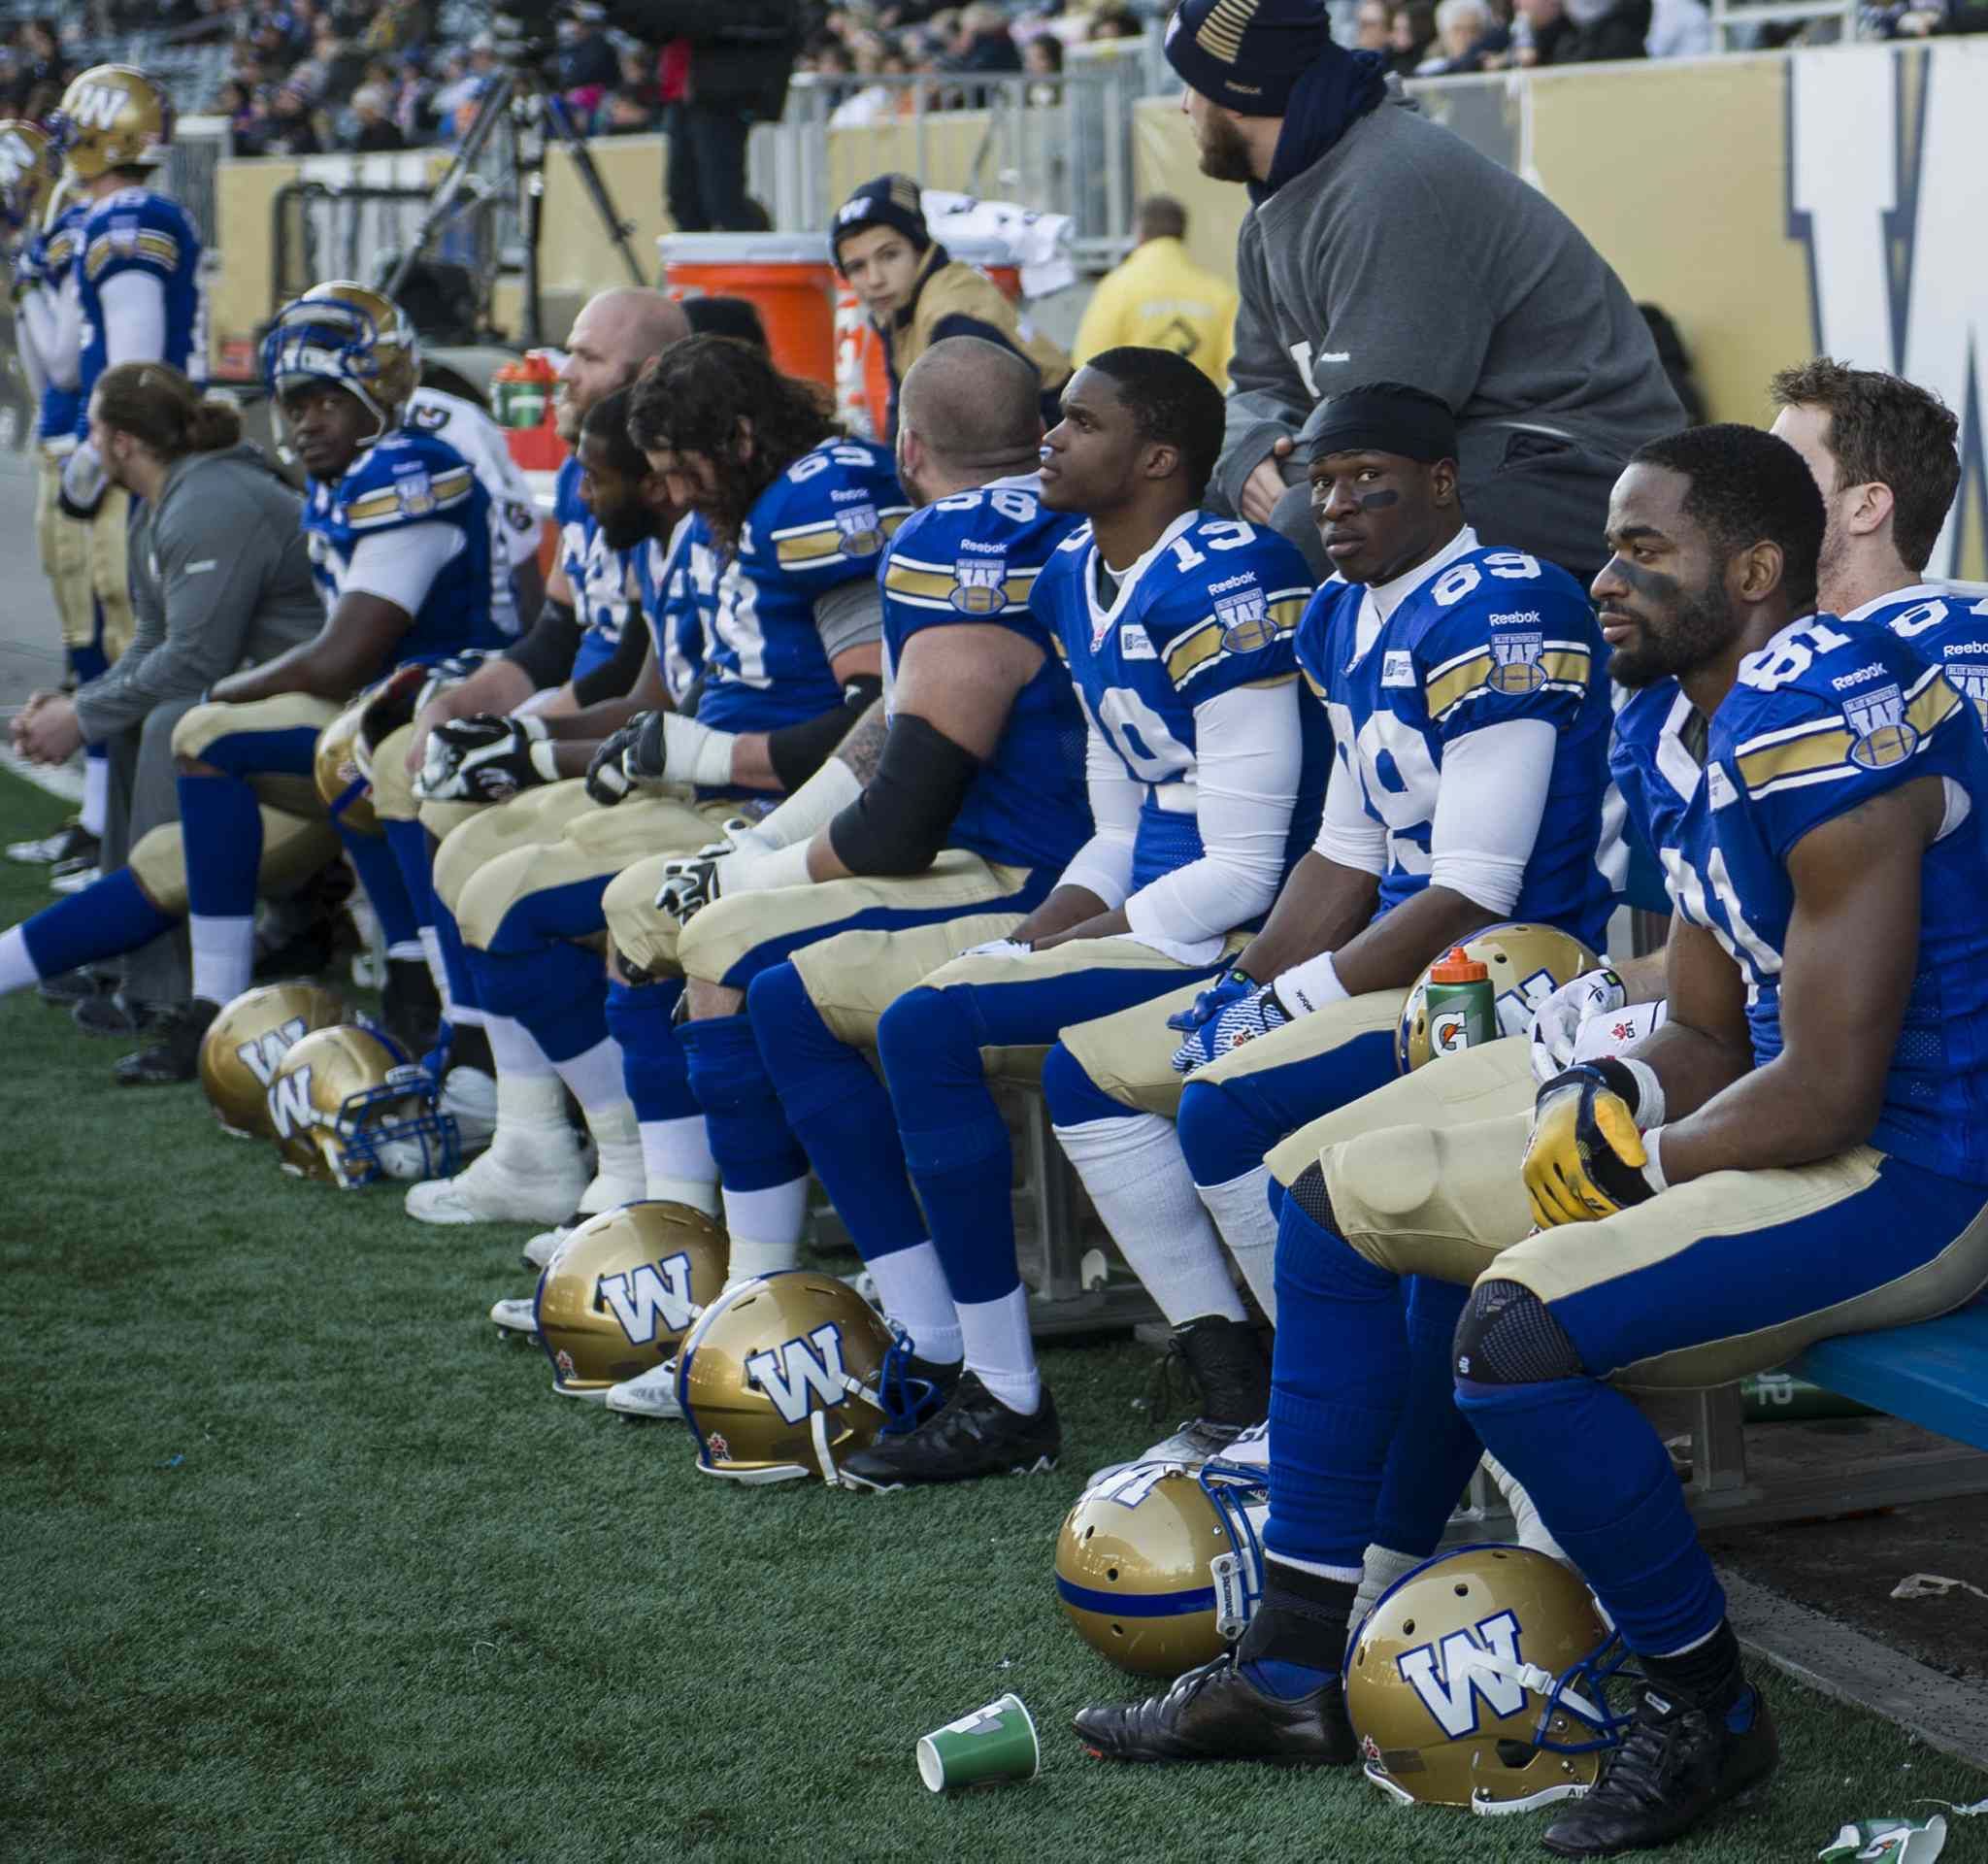 The Winnipeg Blue Bombers look dejected during the final moments of Saturday afternoon's game.